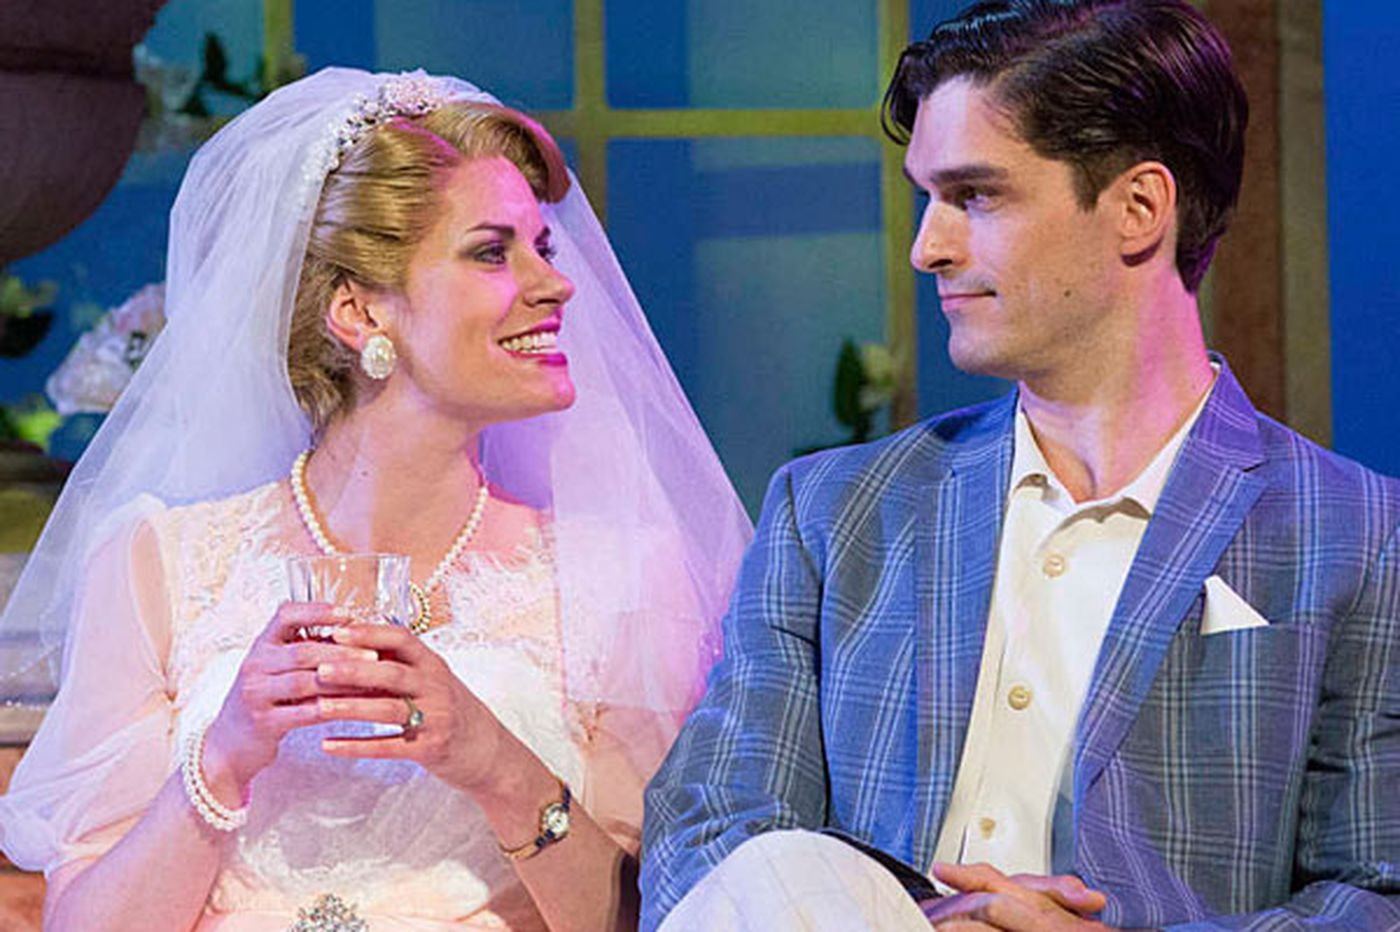 Review: Walnut Street's 'High Society' is bubbly, joy-filled